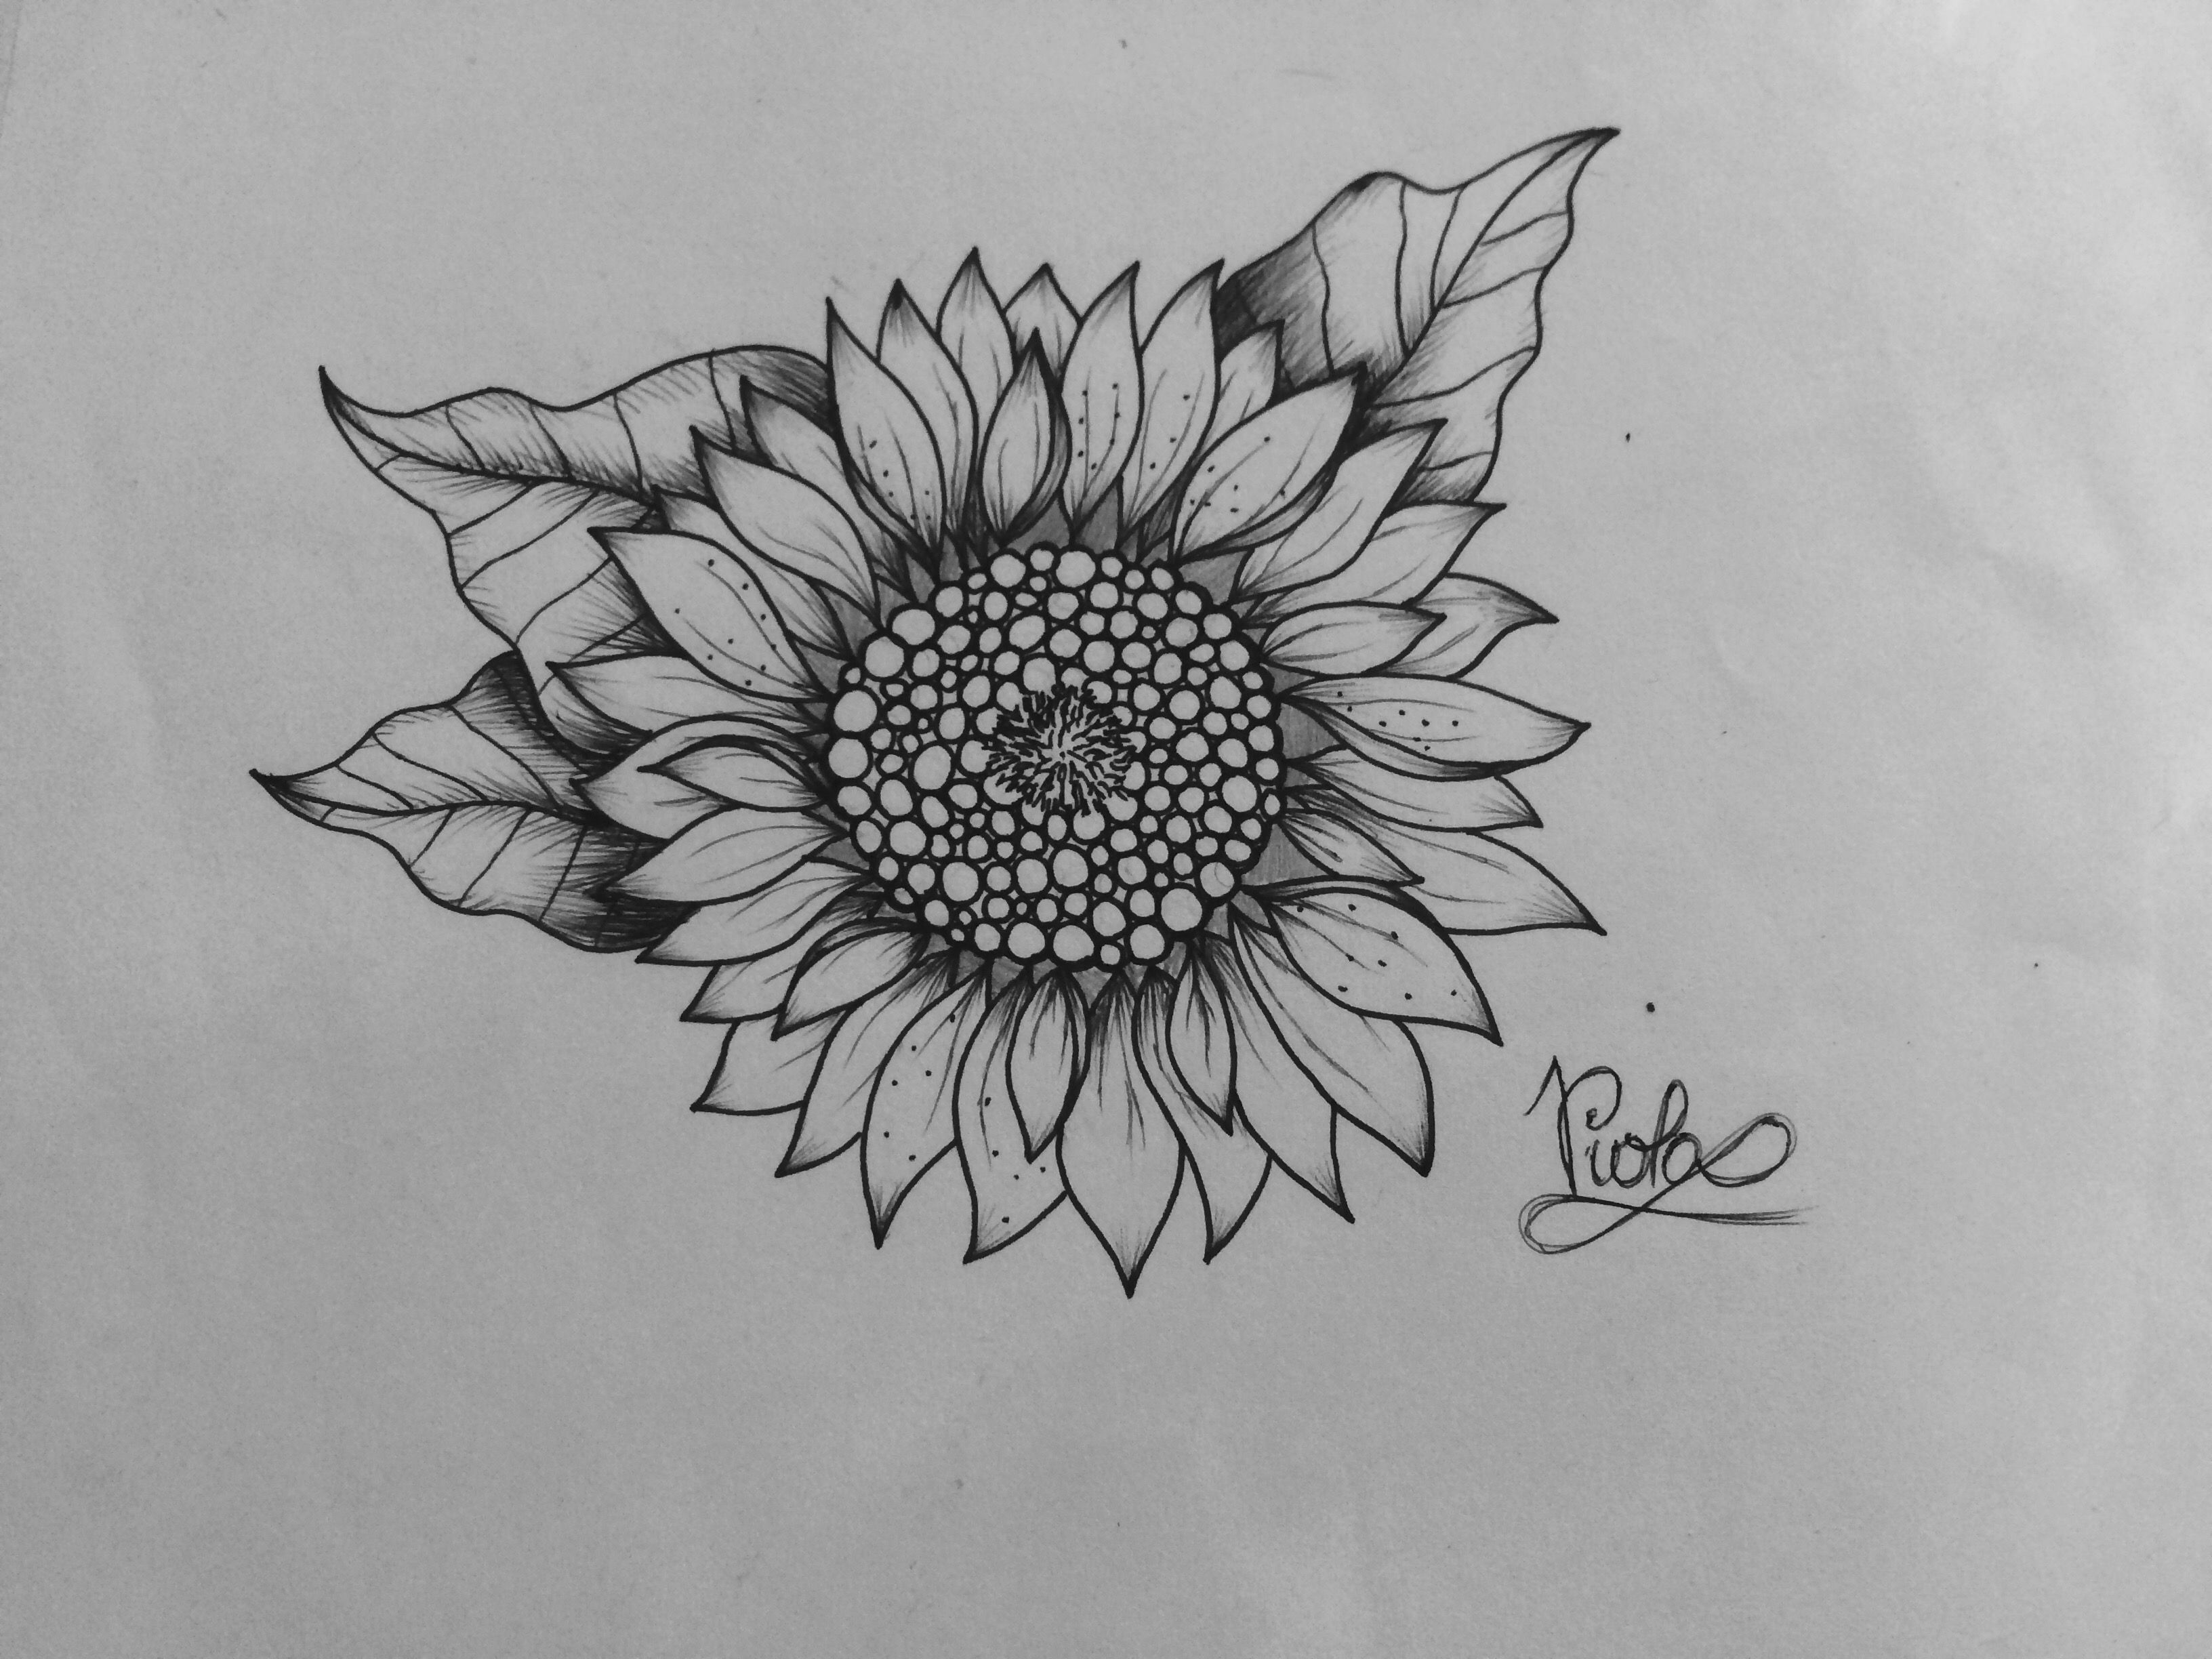 drawing of a sunflower sunflower clipart instant download pen ink of sunflower a drawing